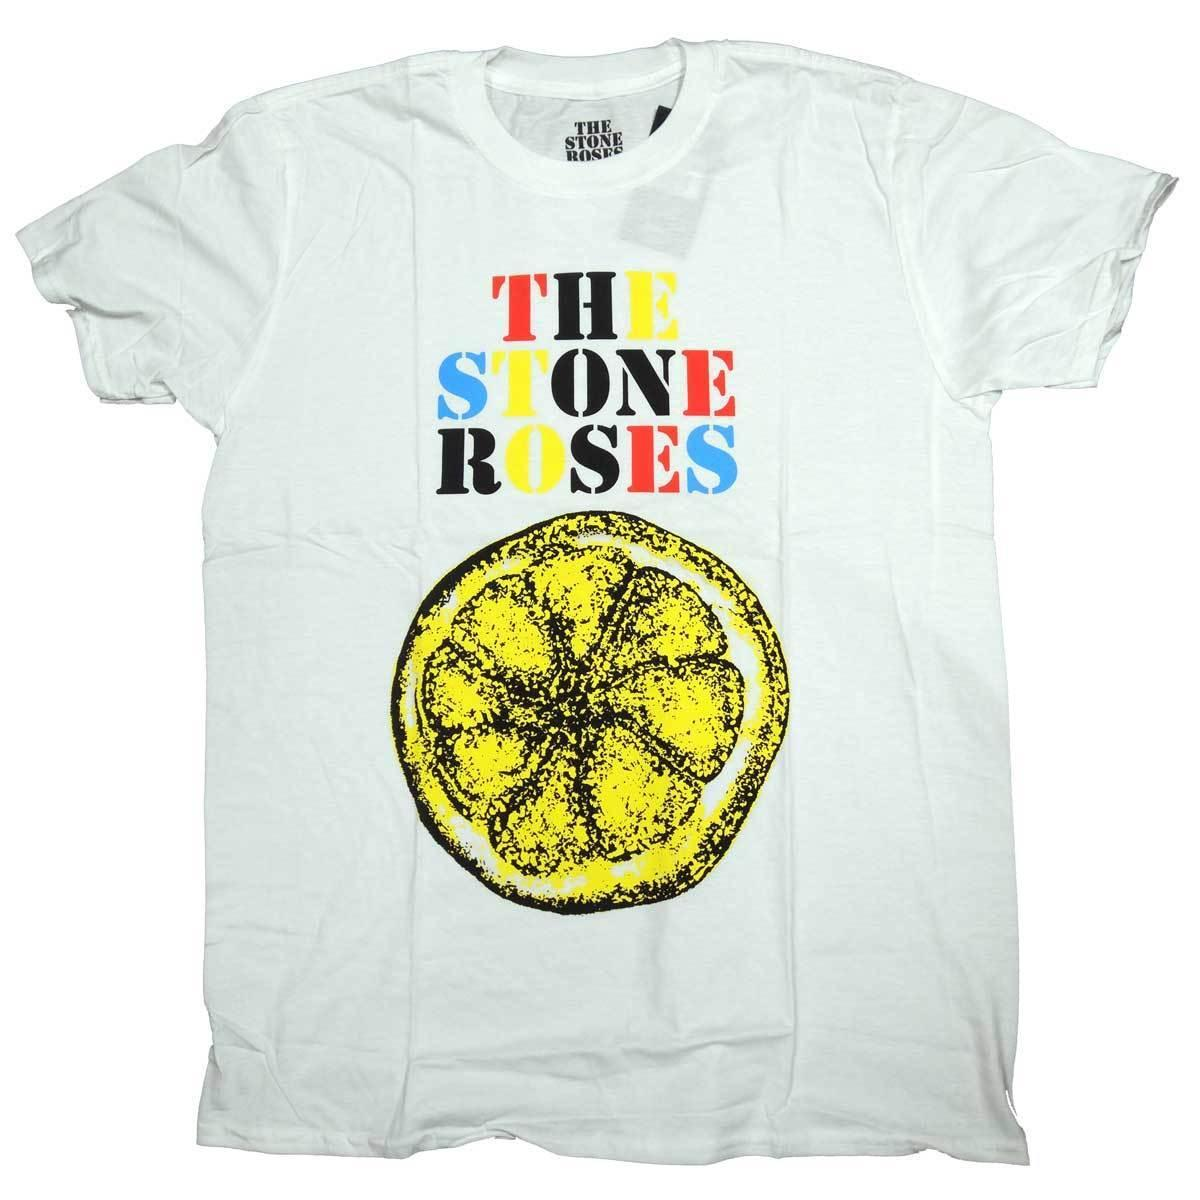 5f95352a3cd6 Details Zu Stone Roses T Shirt Lemon Logo 100% Official Old Skool Hooligans  Unisex Funny Gift Casual Tee Coolest T Shirt Shirts With Designs From ...